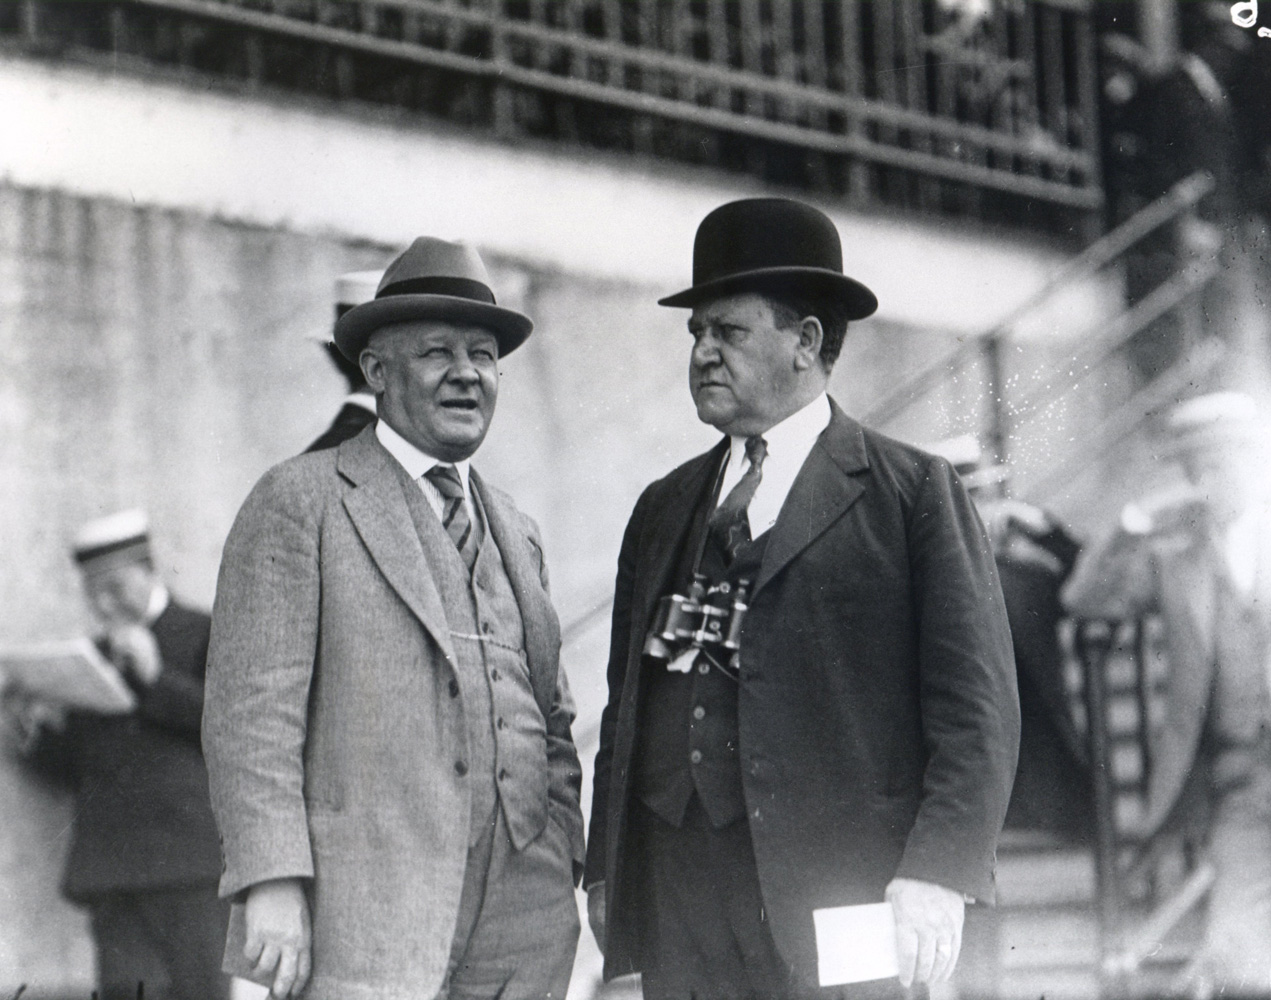 Fred Burlew (on right) with an unidentified man (Keeneland Library Cook Collection/Museum Collection)